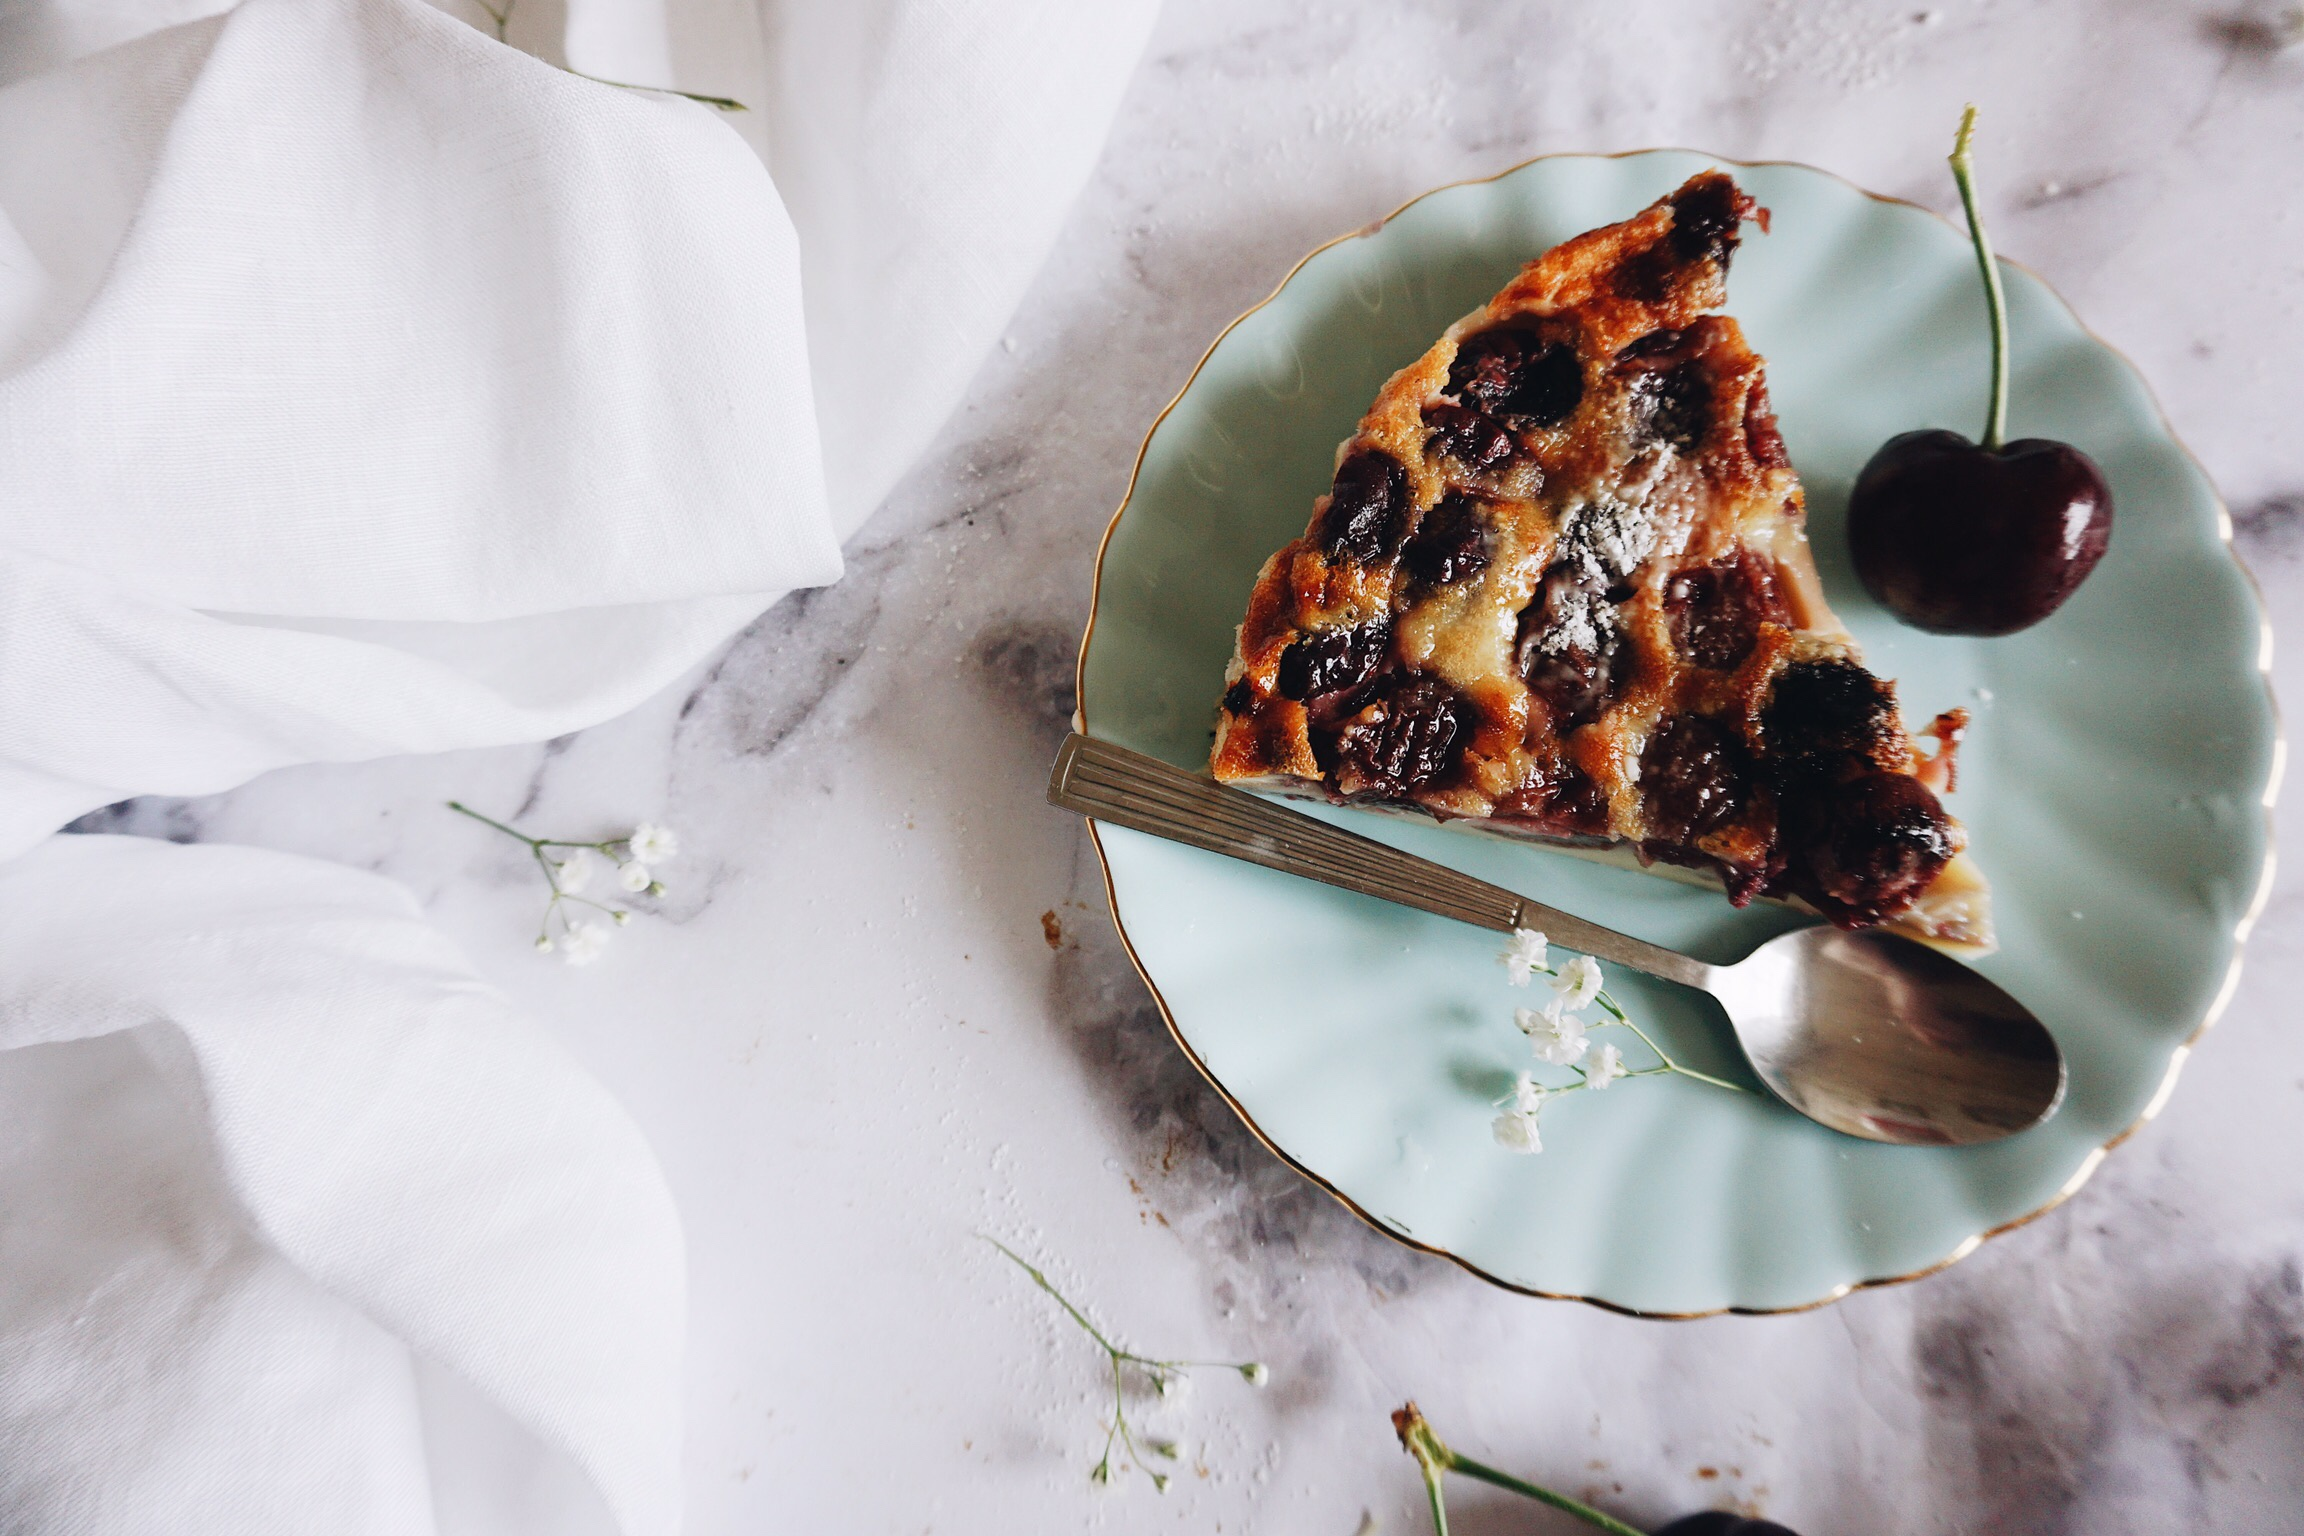 Cherry clafoutis on pale green flower plate next to linen table cloth on marble counter sprinkled icing sugar